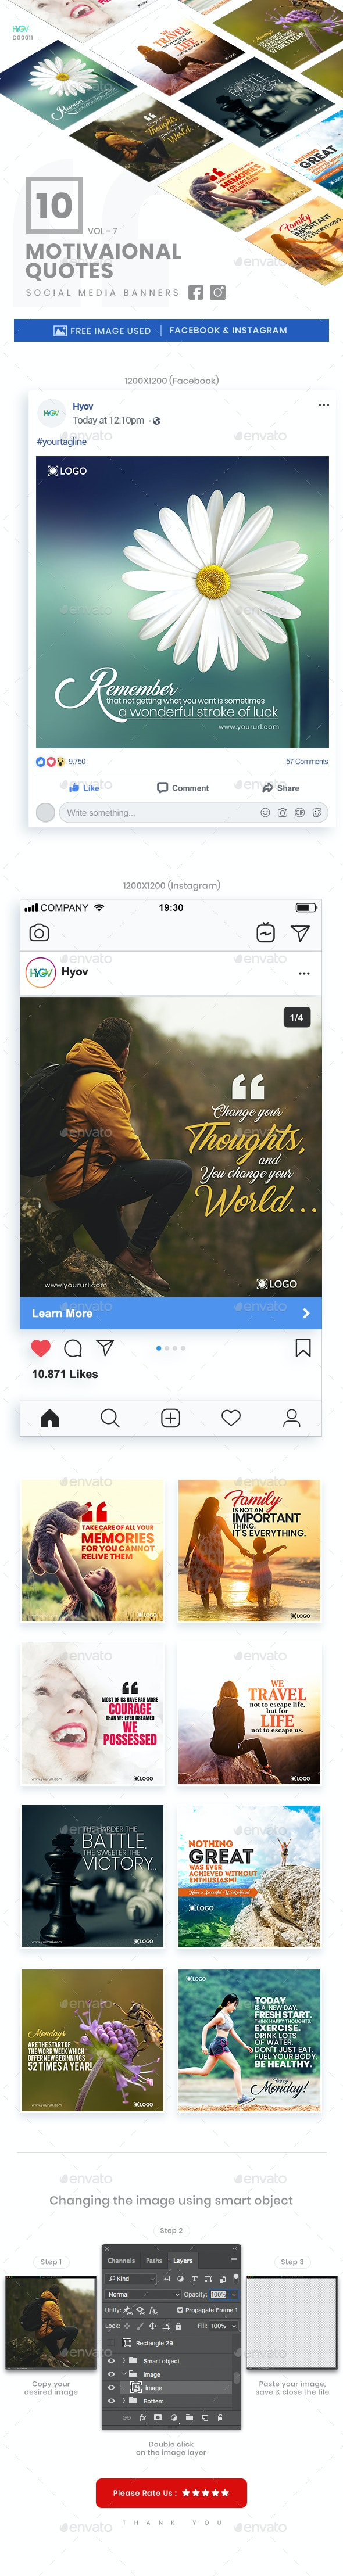 Quotes Facebook and Instagram Templates - 10 Designs - Miscellaneous Social Media